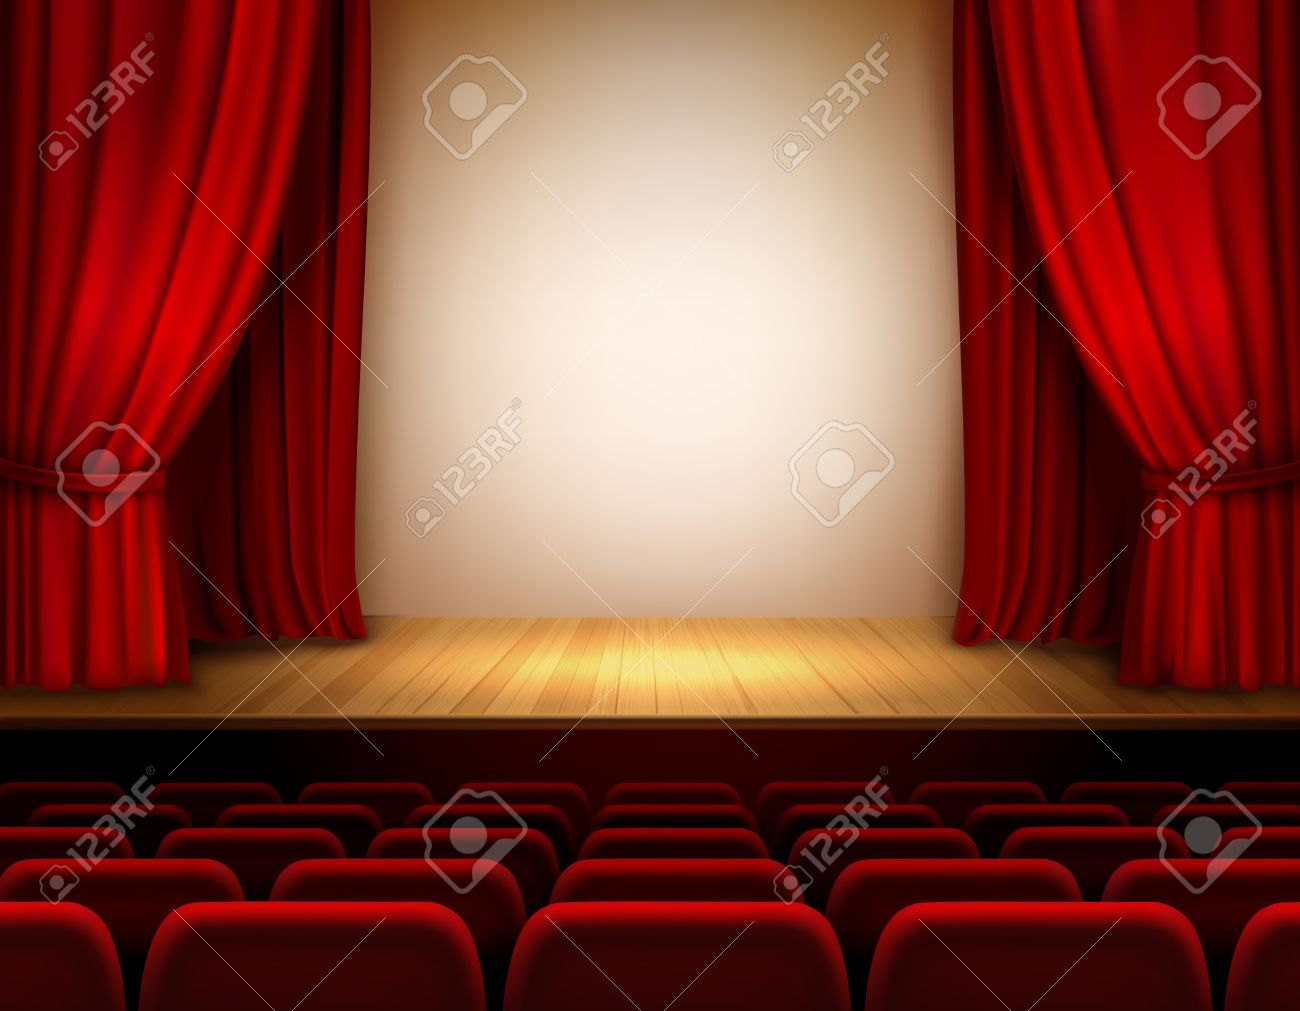 Open theater drapes or stage curtains royalty free stock image image - Theater Stage With Red Velvet Open Retro Style Curtain Background Illustration Stock Vector 32945890